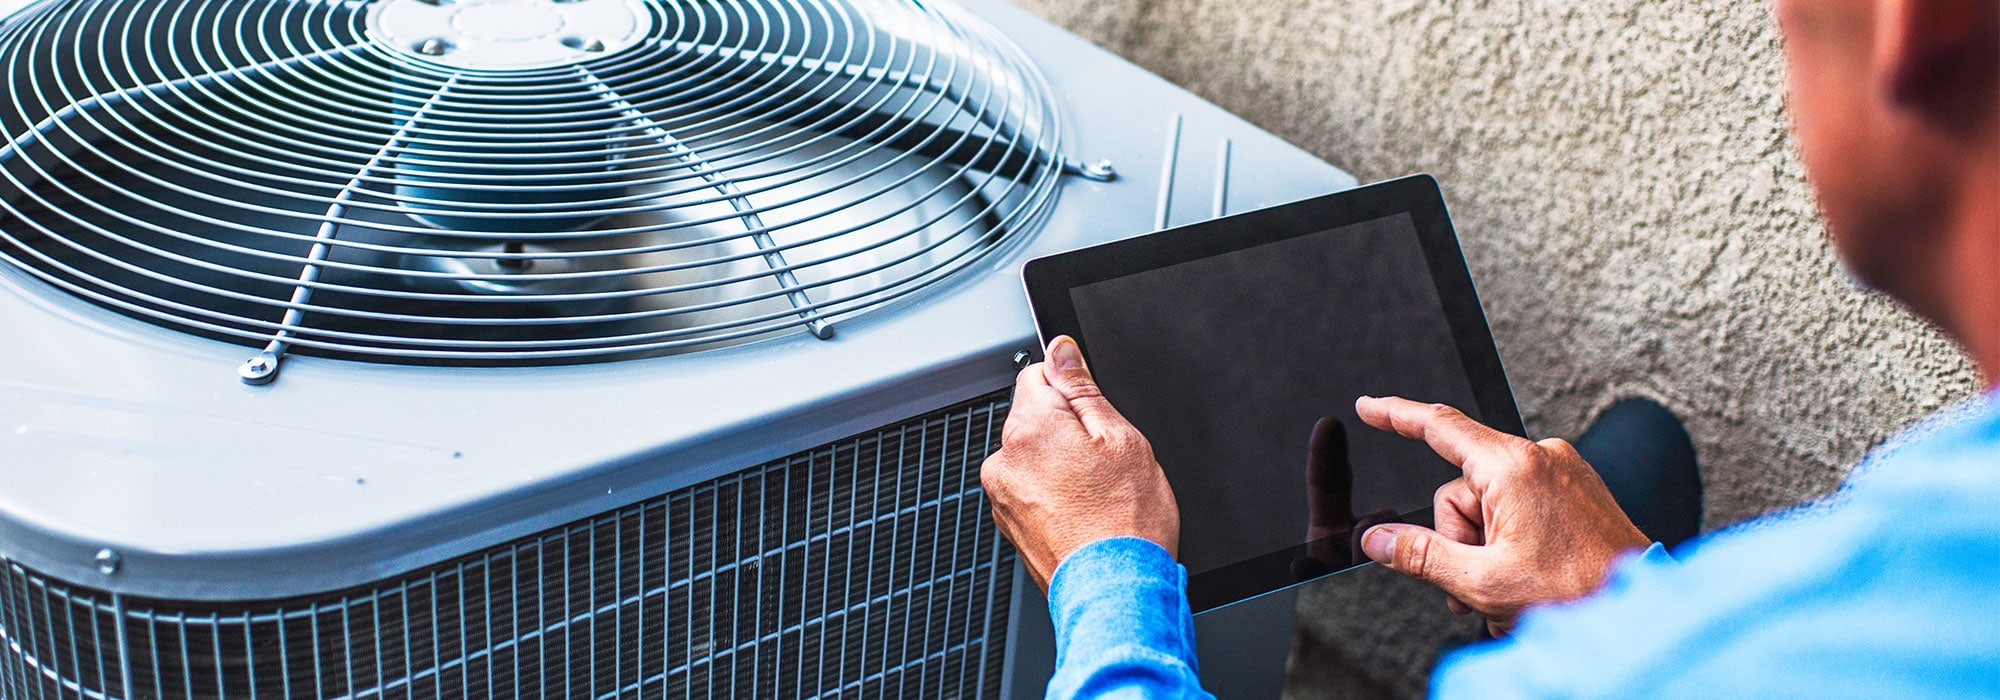 How to Prepare Your Air Conditioning for the Upcoming Year